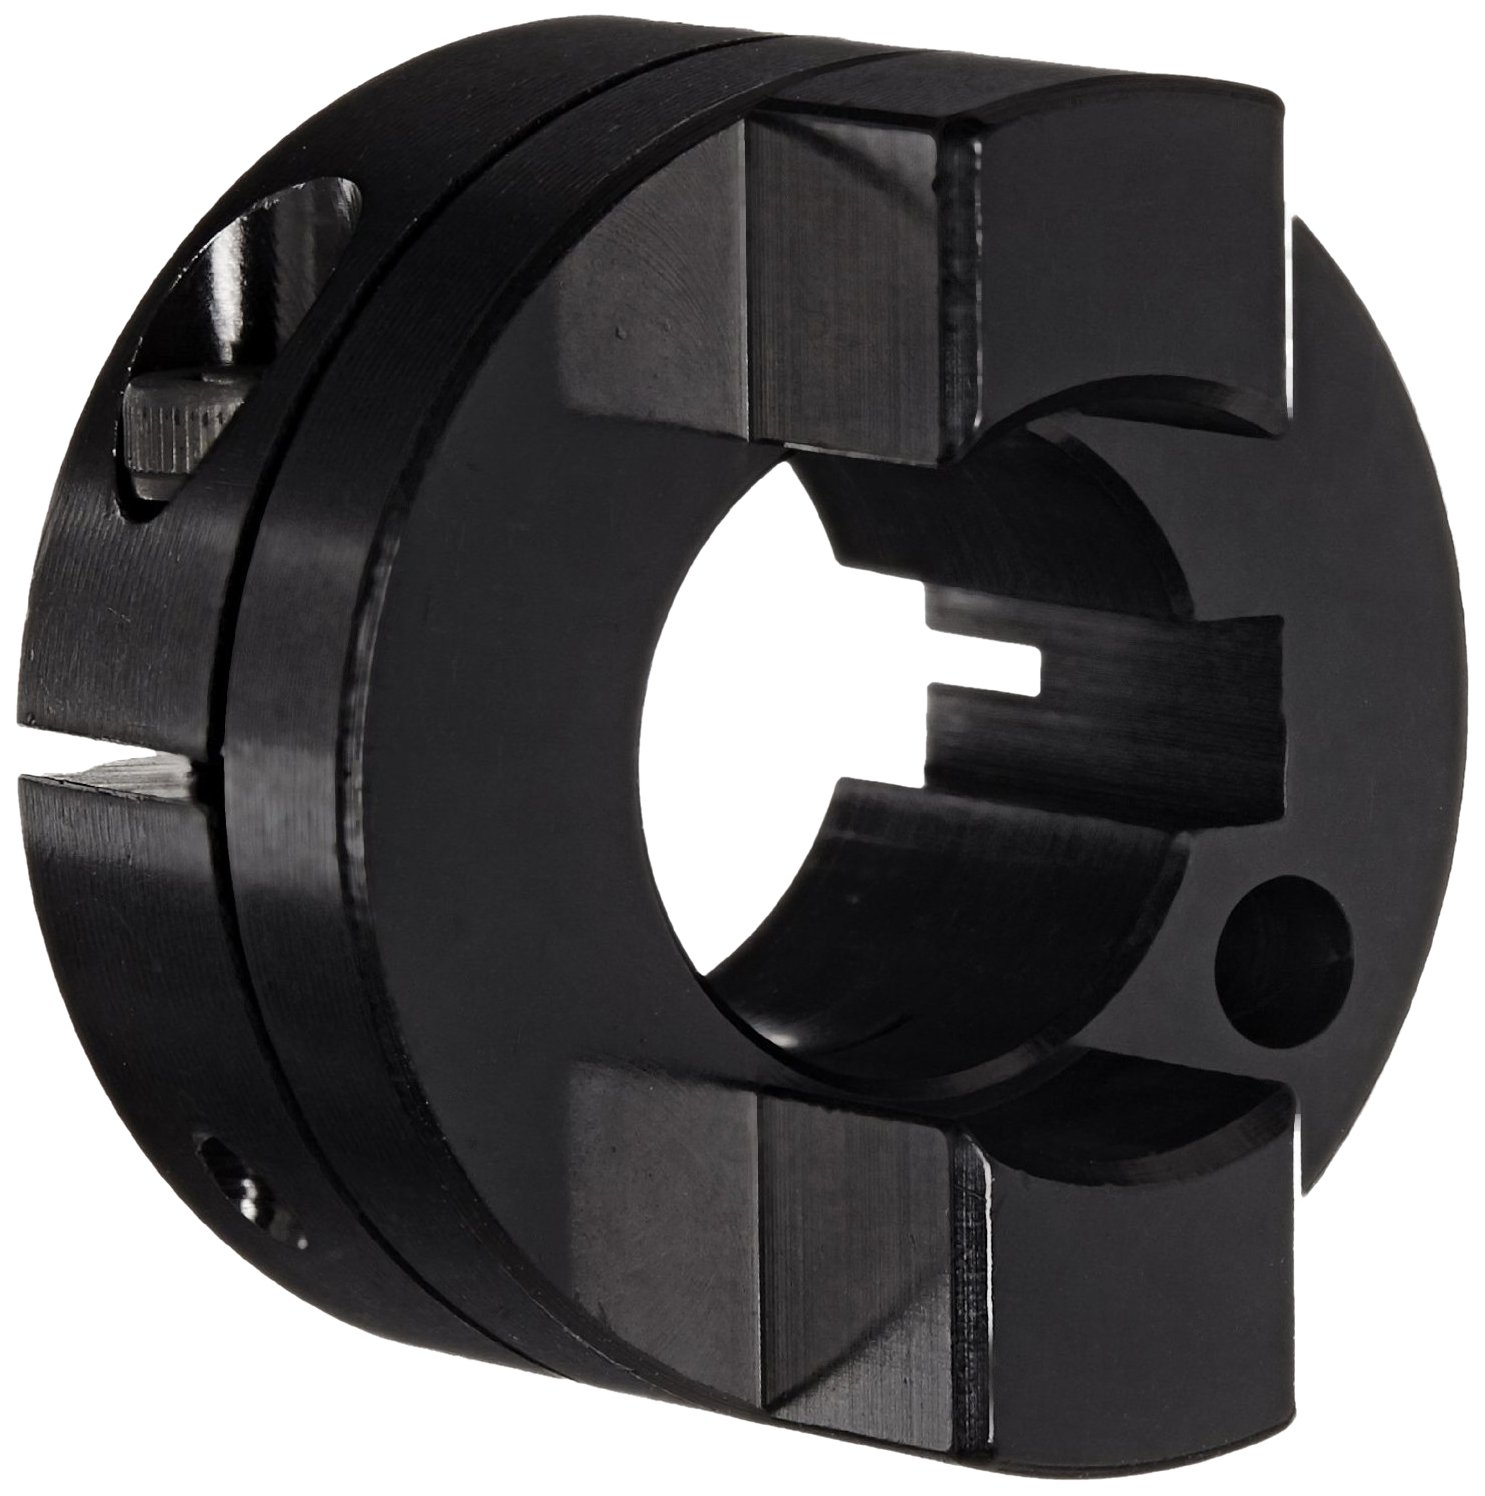 Ruland OCT21-10-A Oldham Coupling Hub, Clamp Style, Black Anodized Aluminum.625 Bore, 1-5/16 OD, 1-7/8 Length